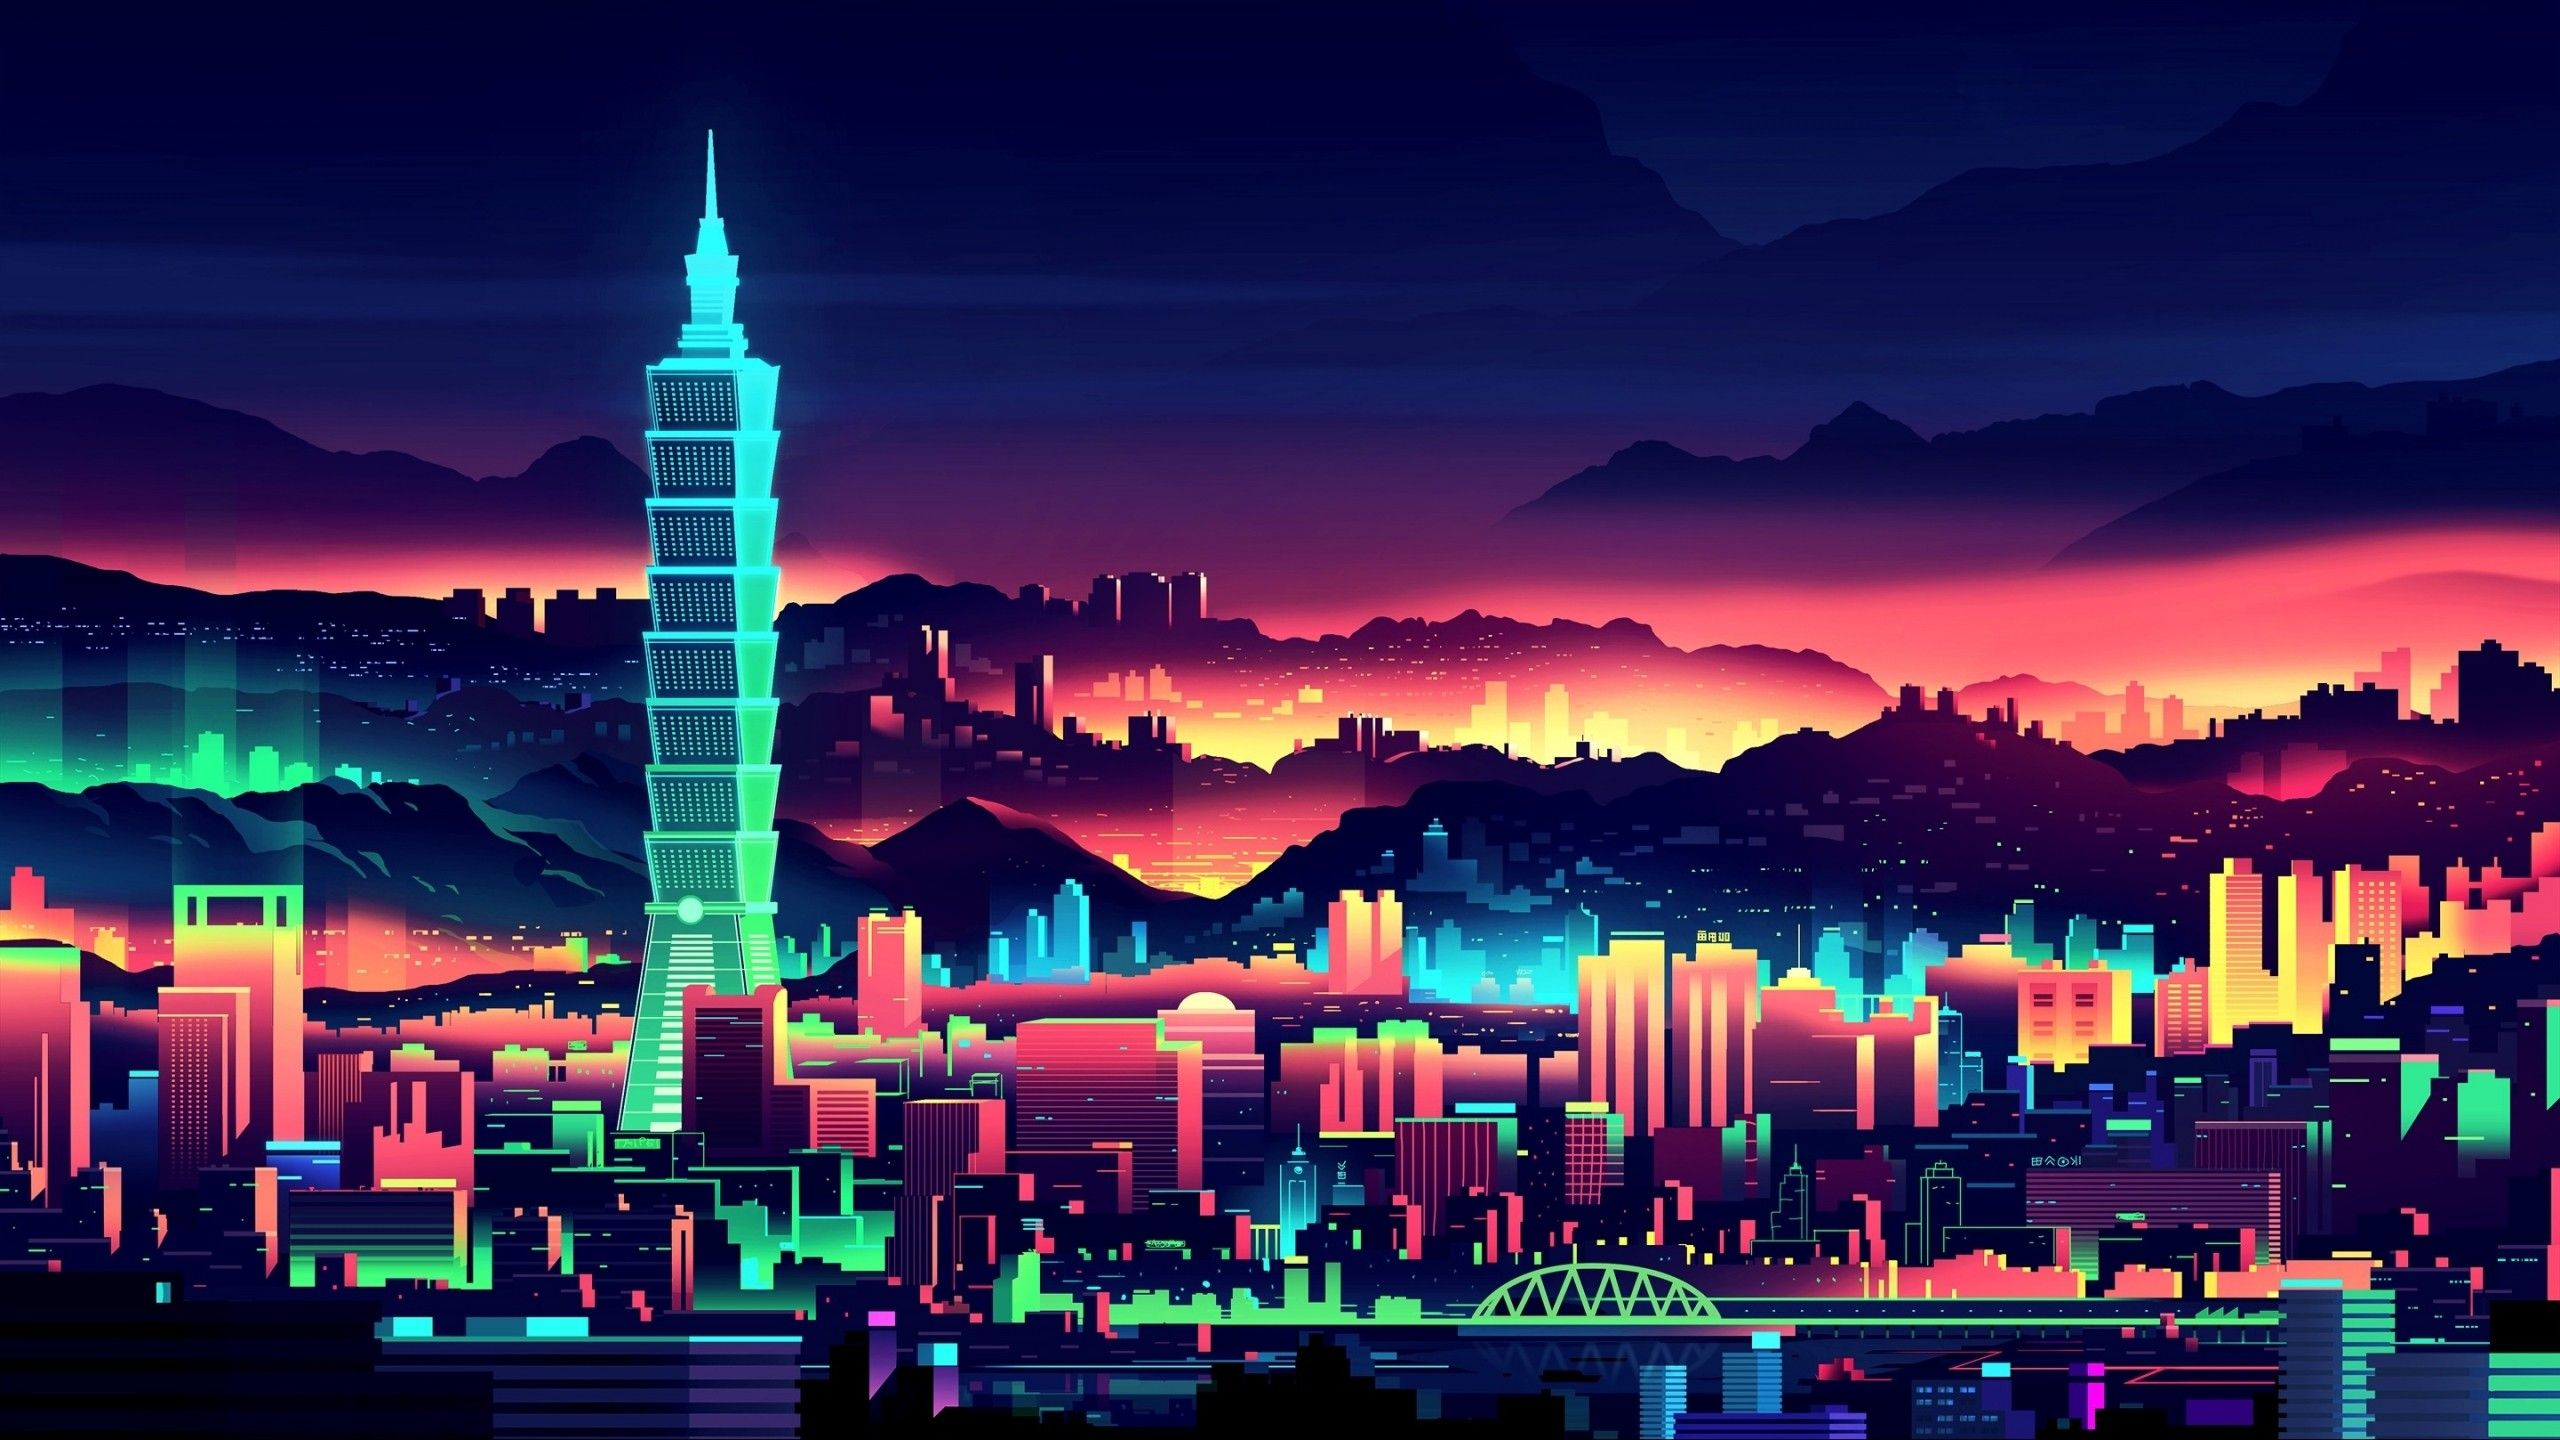 2560 X 1440 Wallpaper Dump Vaporwave Wallpaper City